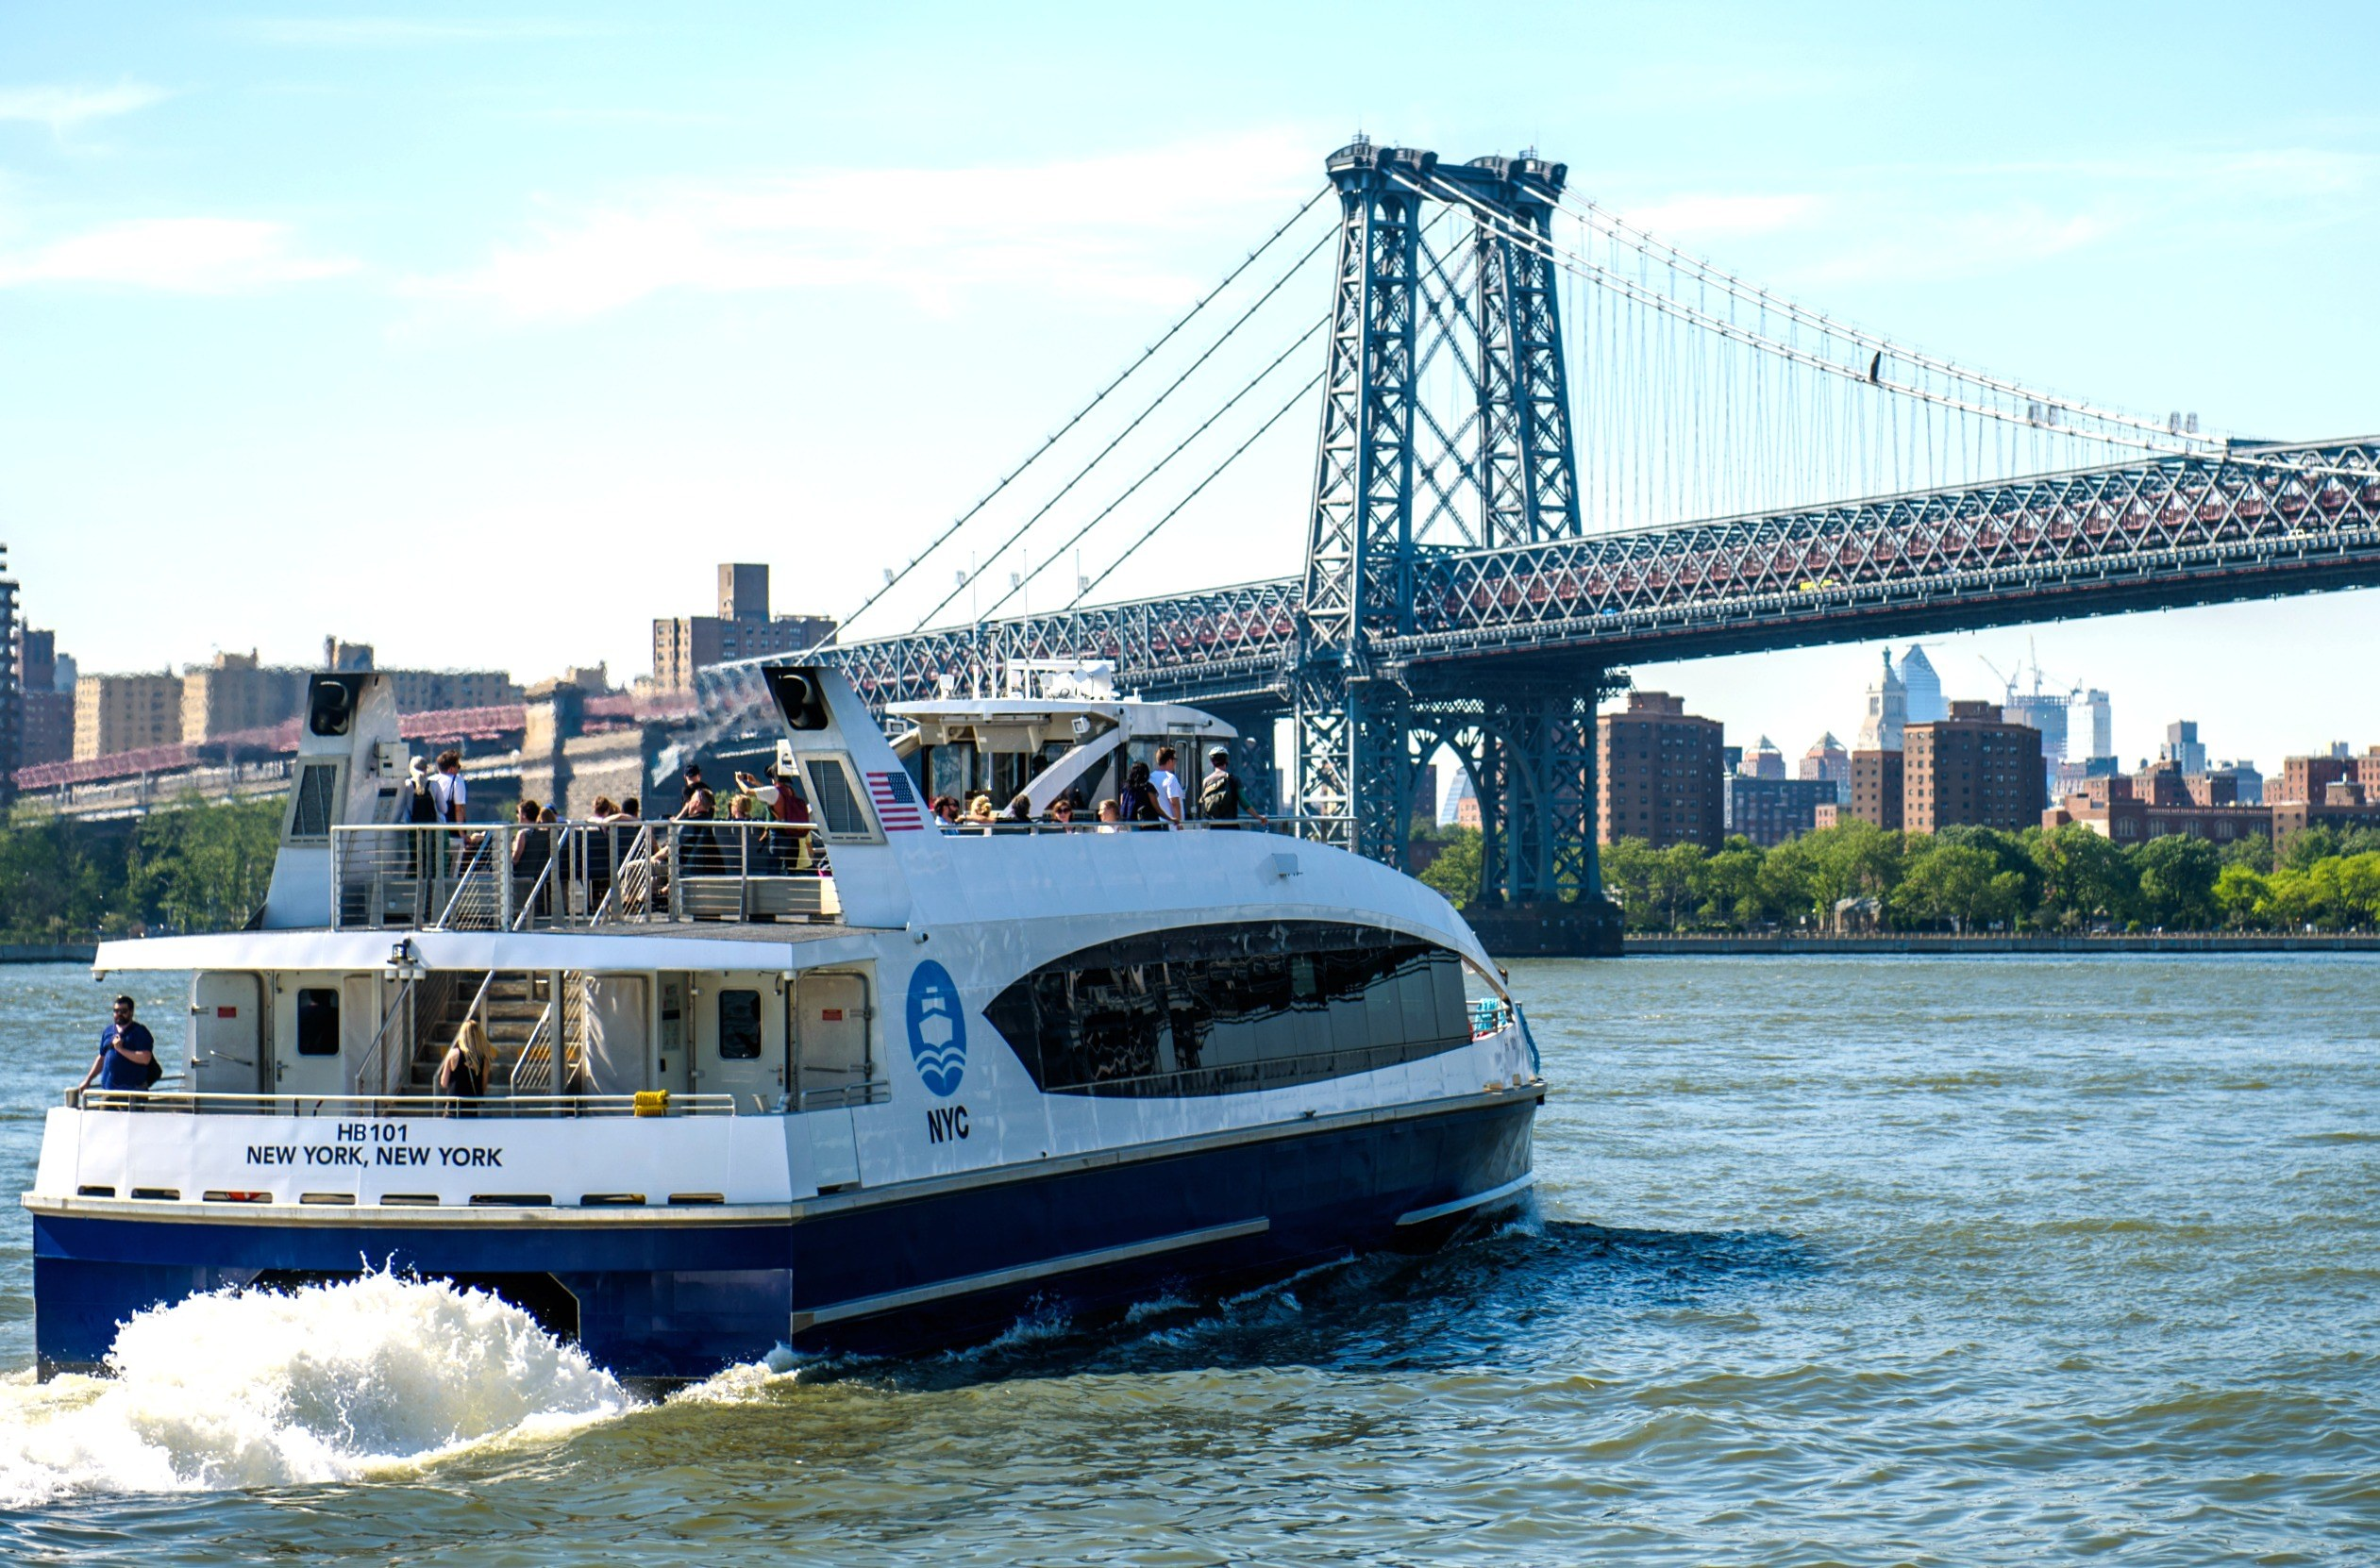 nyc ferry, citywide ferry service